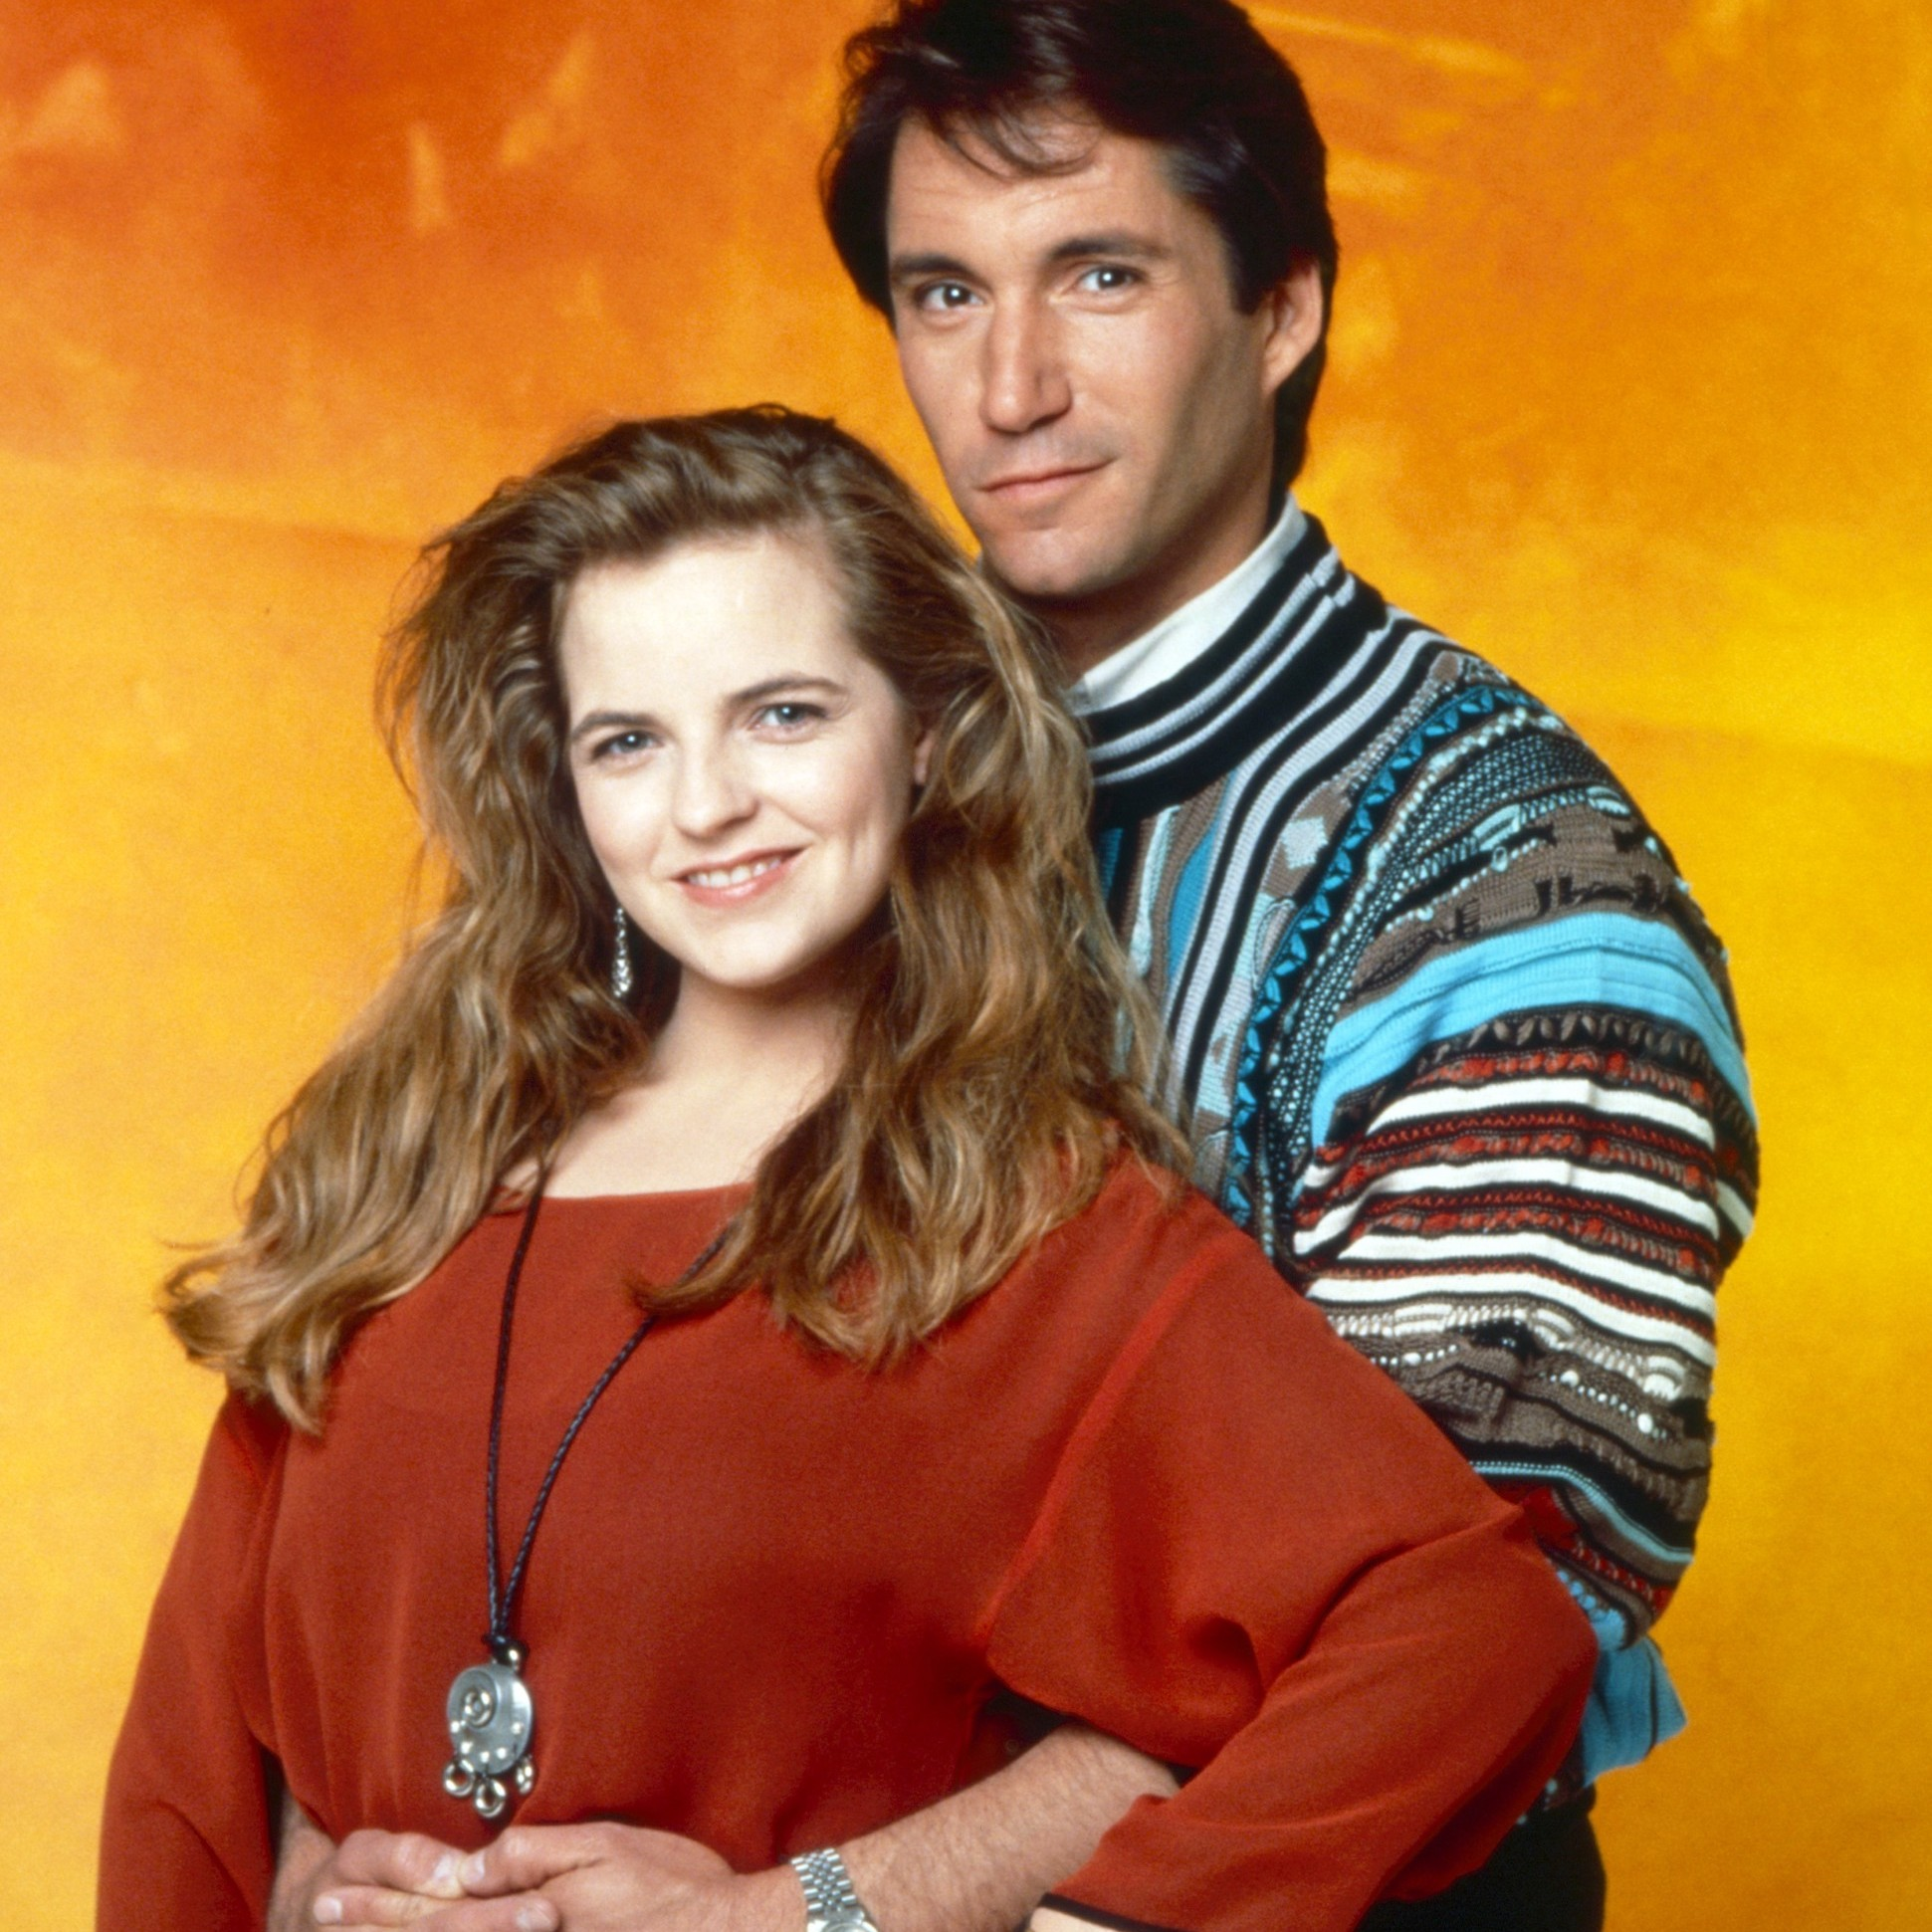 THE YOUNG AND THE RESTLESS, from left: Tricia Cast, Michael Corbett david nina cbs ec